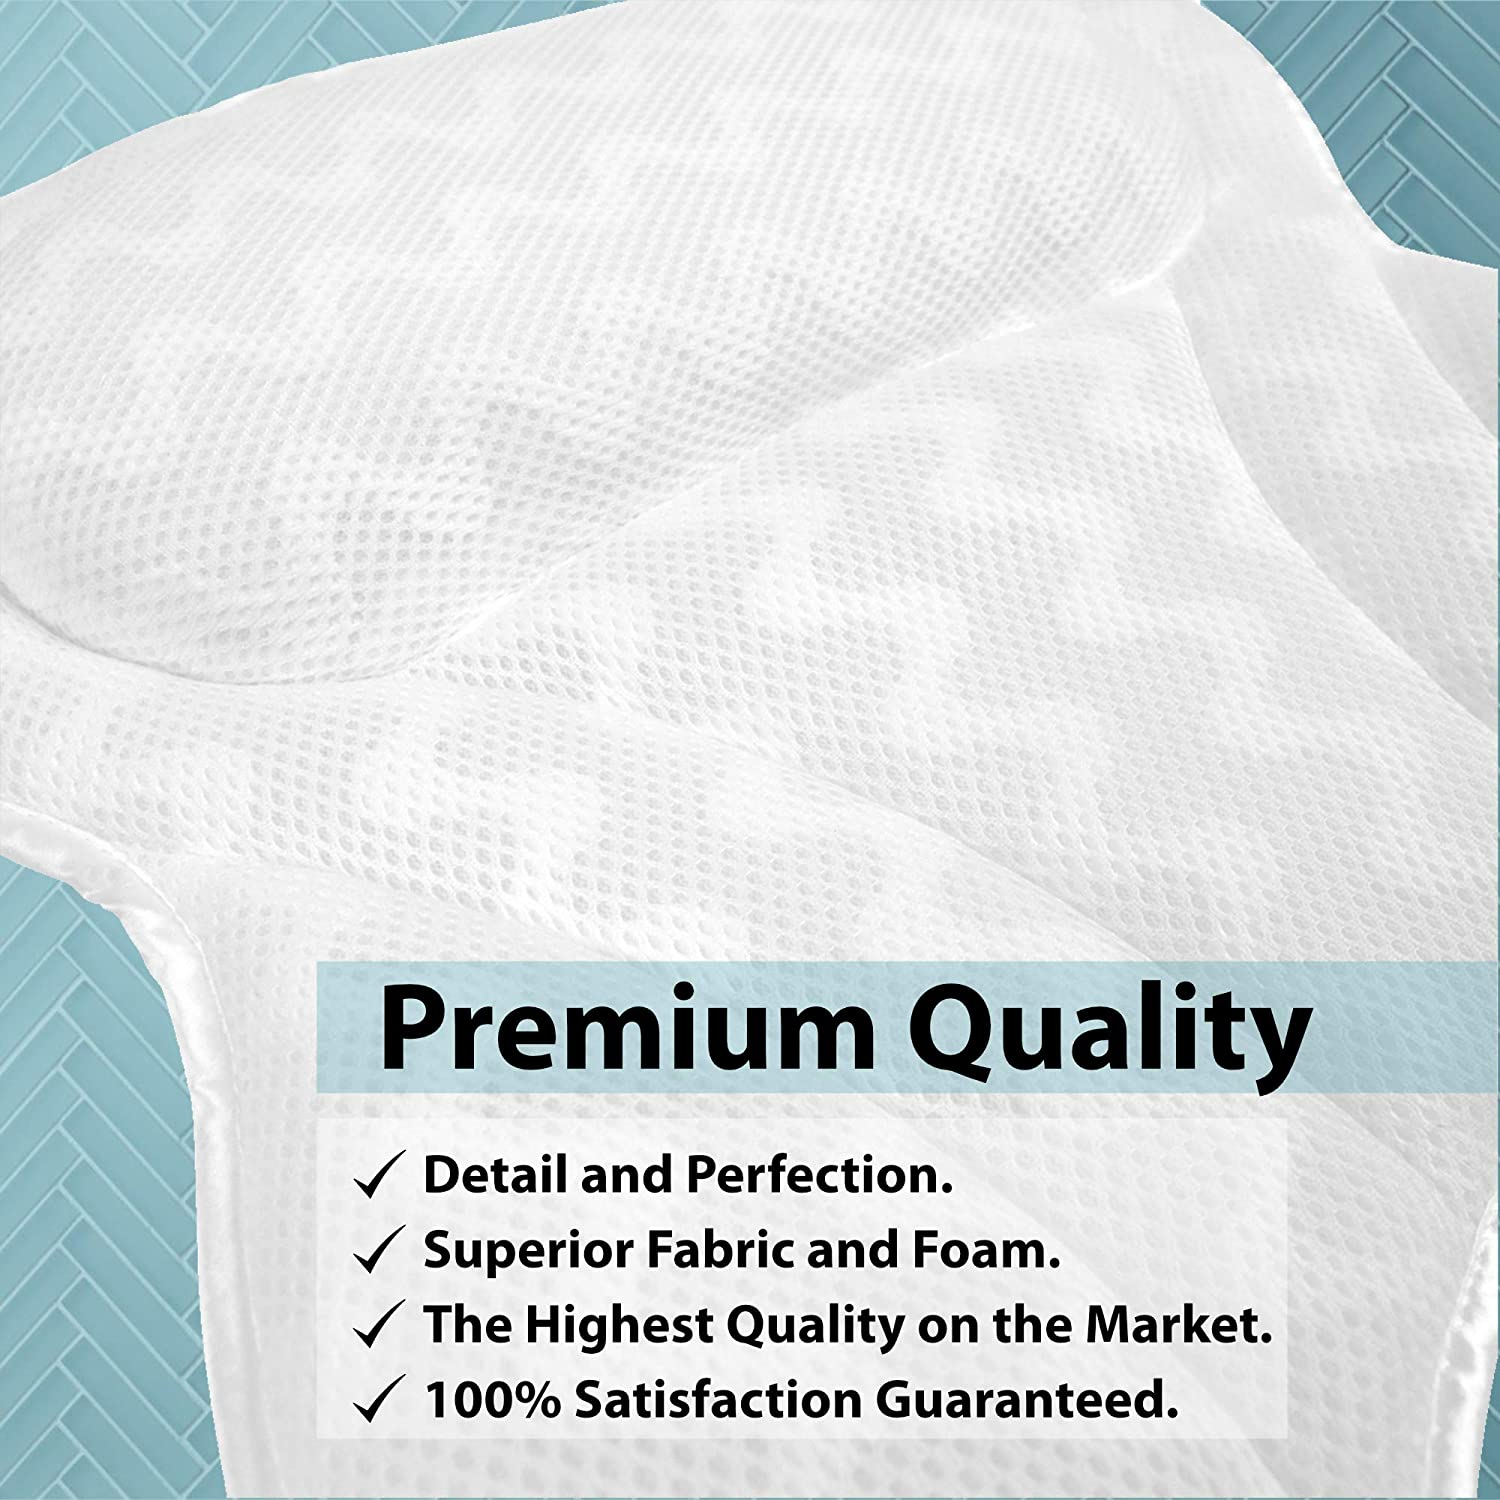 BILLIE BEAN Luxury Bath Pillow for Bathtub - 4 Bath Bombs Included - Extra Strong Suction Bath Pillows for Tub Neck and Back Support - A Relaxing Bathtub Pillow - Billie Bean Bath Accessories : Beauty